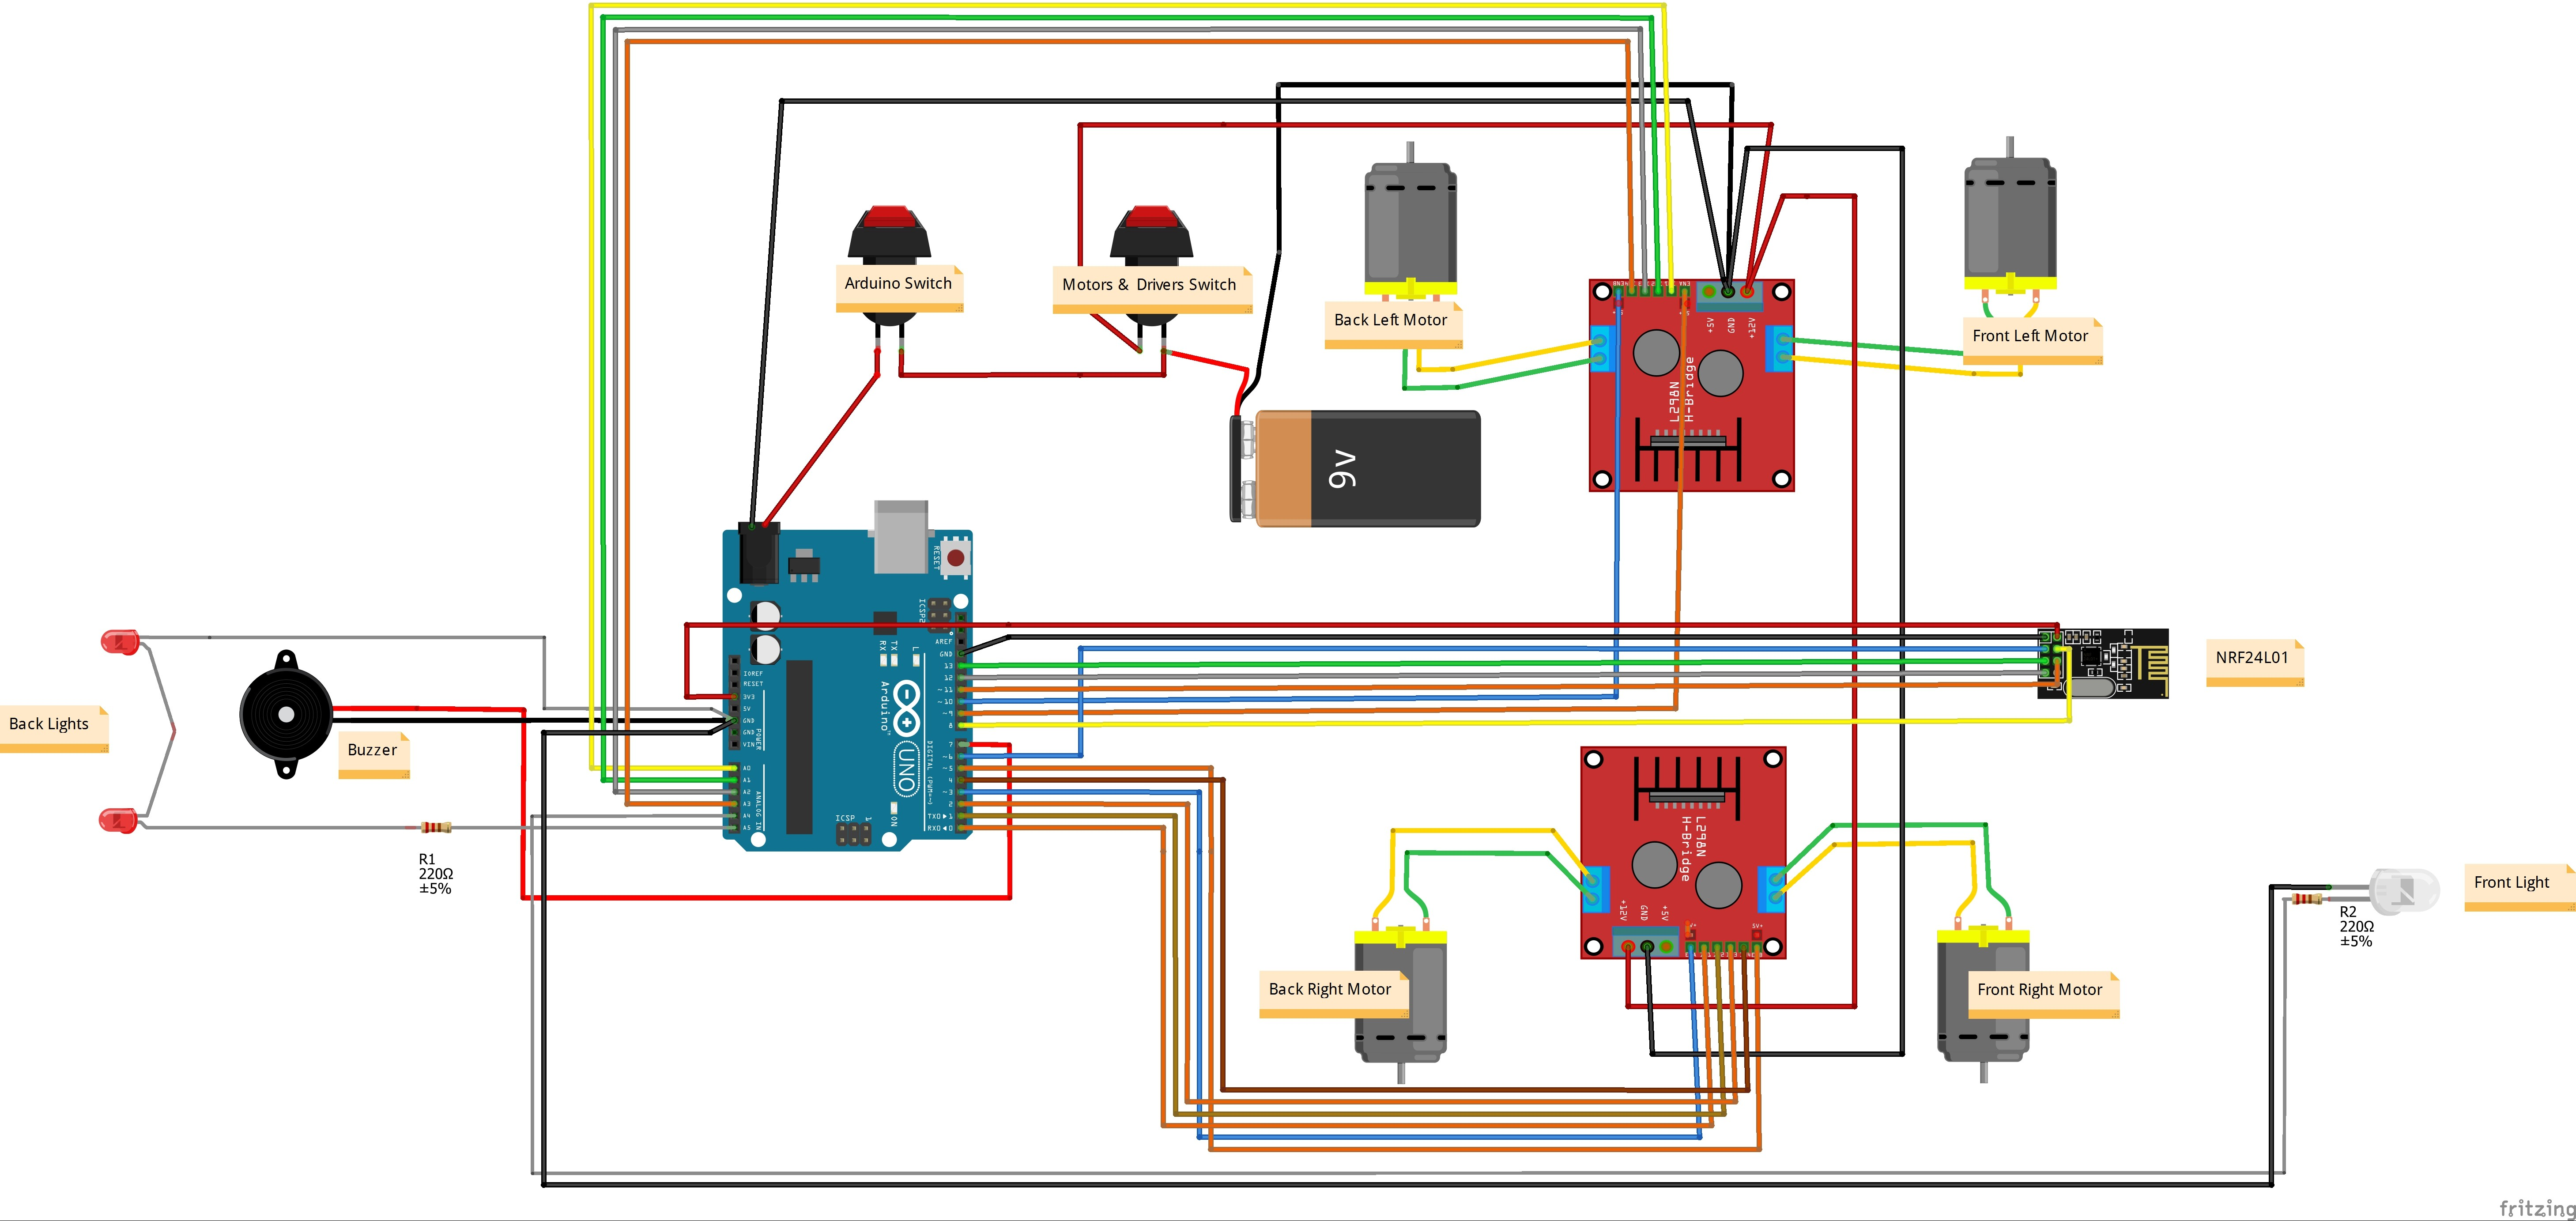 Remote Control Car Diagram Arduino 4wd Rc Car Hackster Of Remote Control Car Diagram